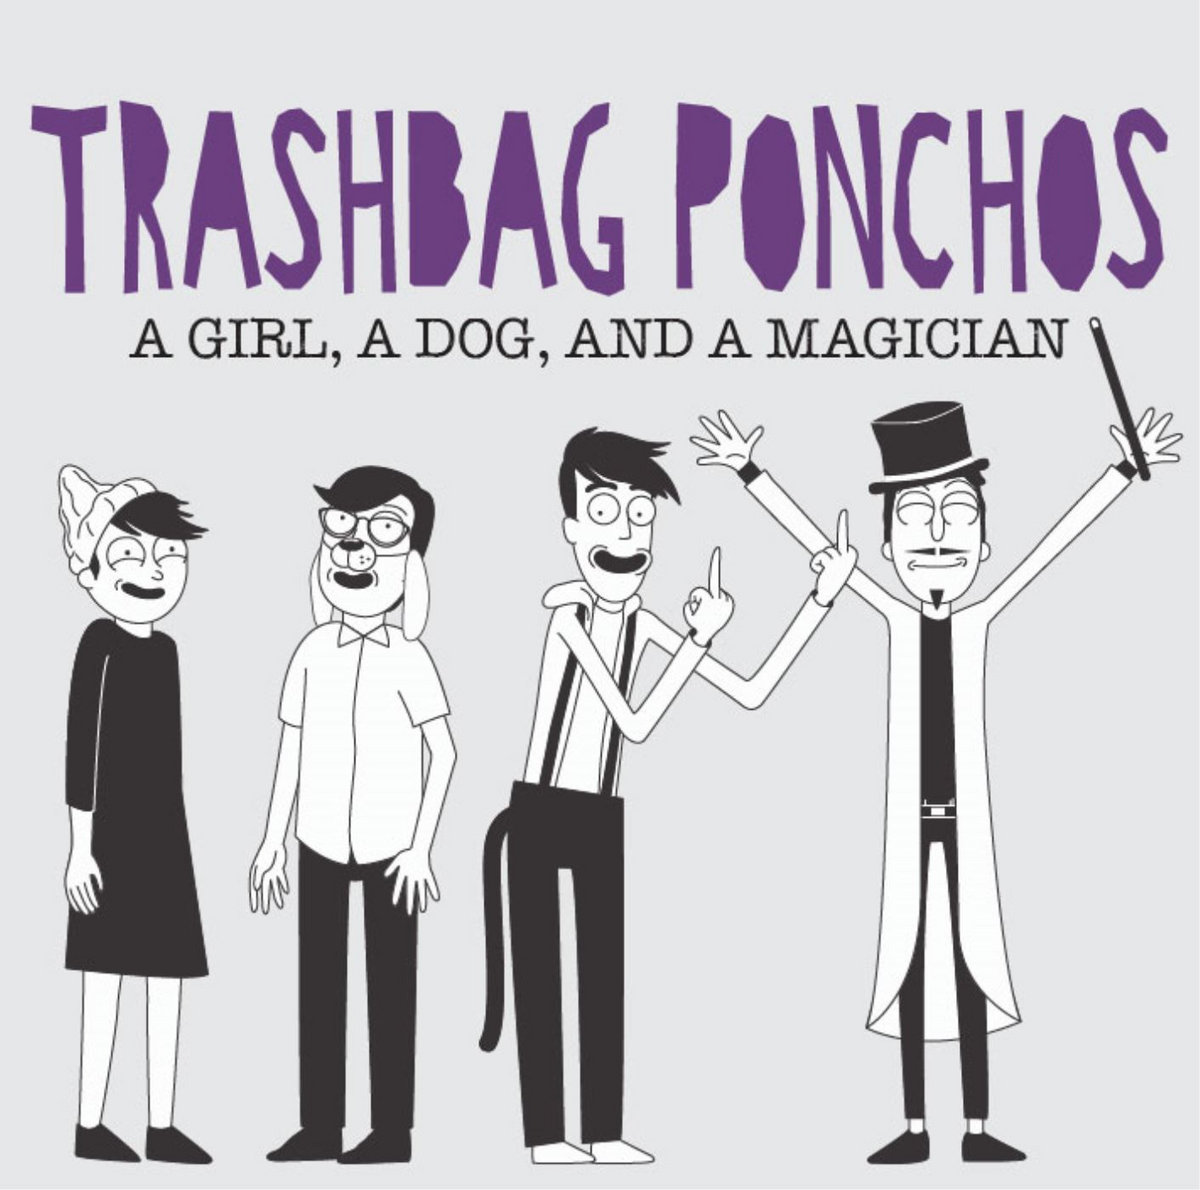 Light In The Attic. From A Girl, A Dog, And A Magician By Trashbag Ponchos